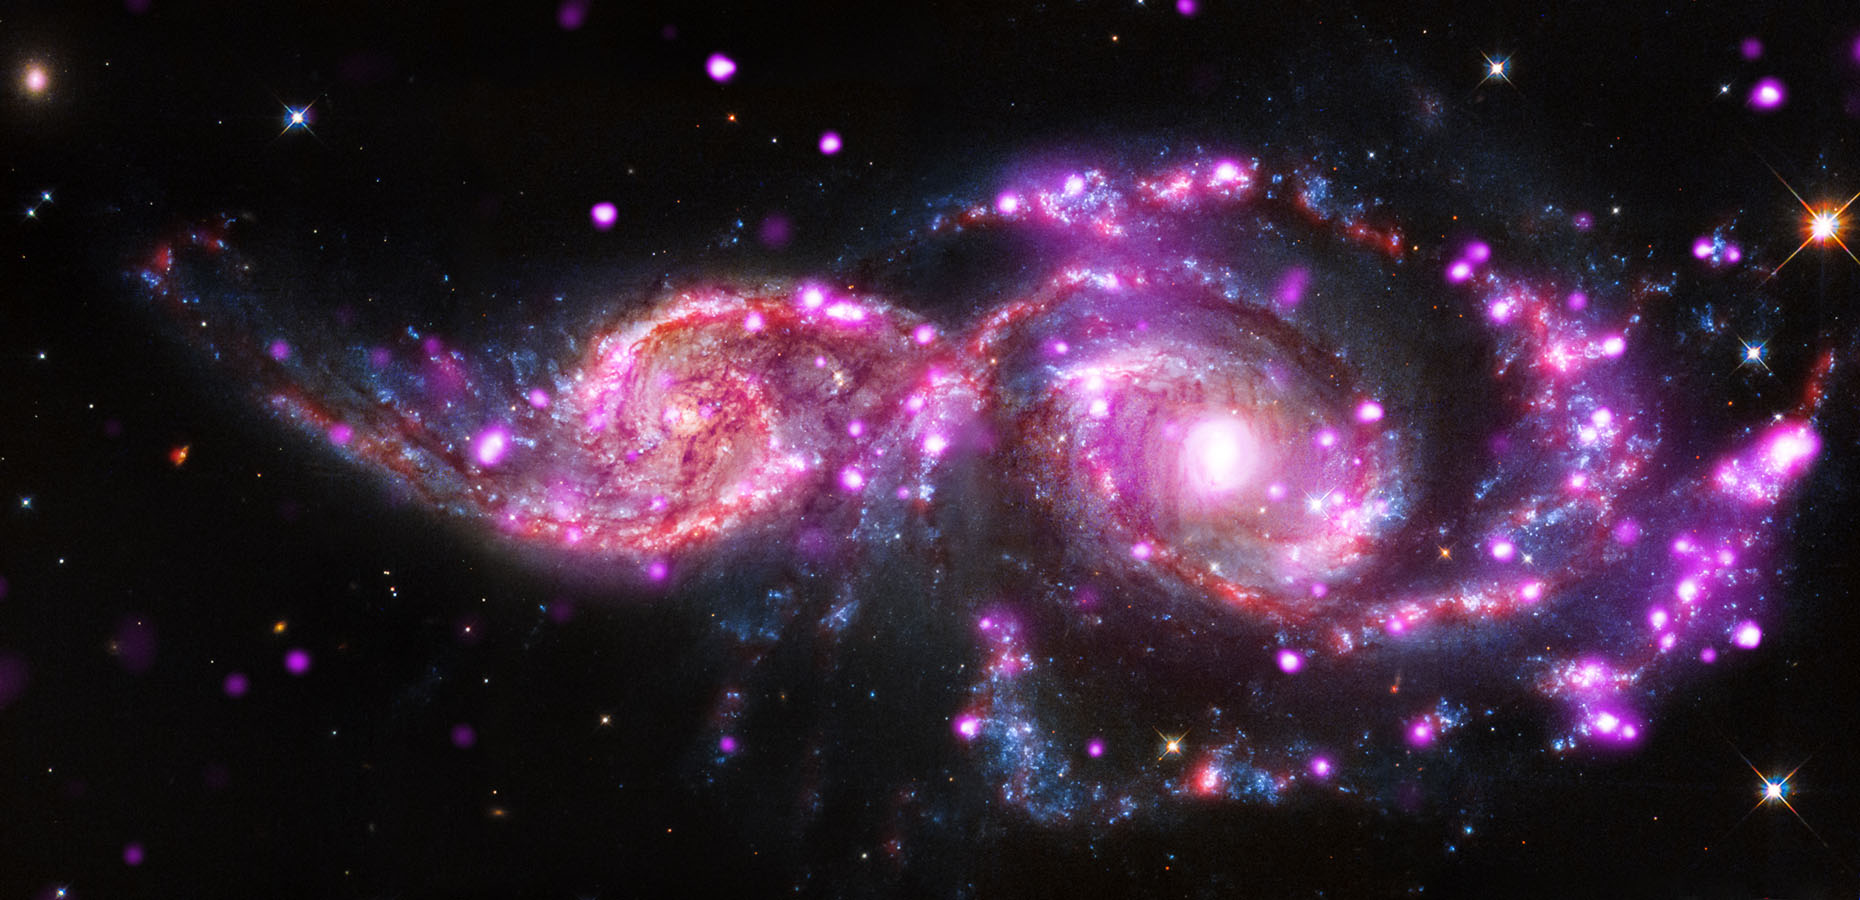 This composite image of NGC 2207 and IC 2163 contains data from Chandra, NASA's Hubble Space Telescope and the Spitzer Space Telescope.